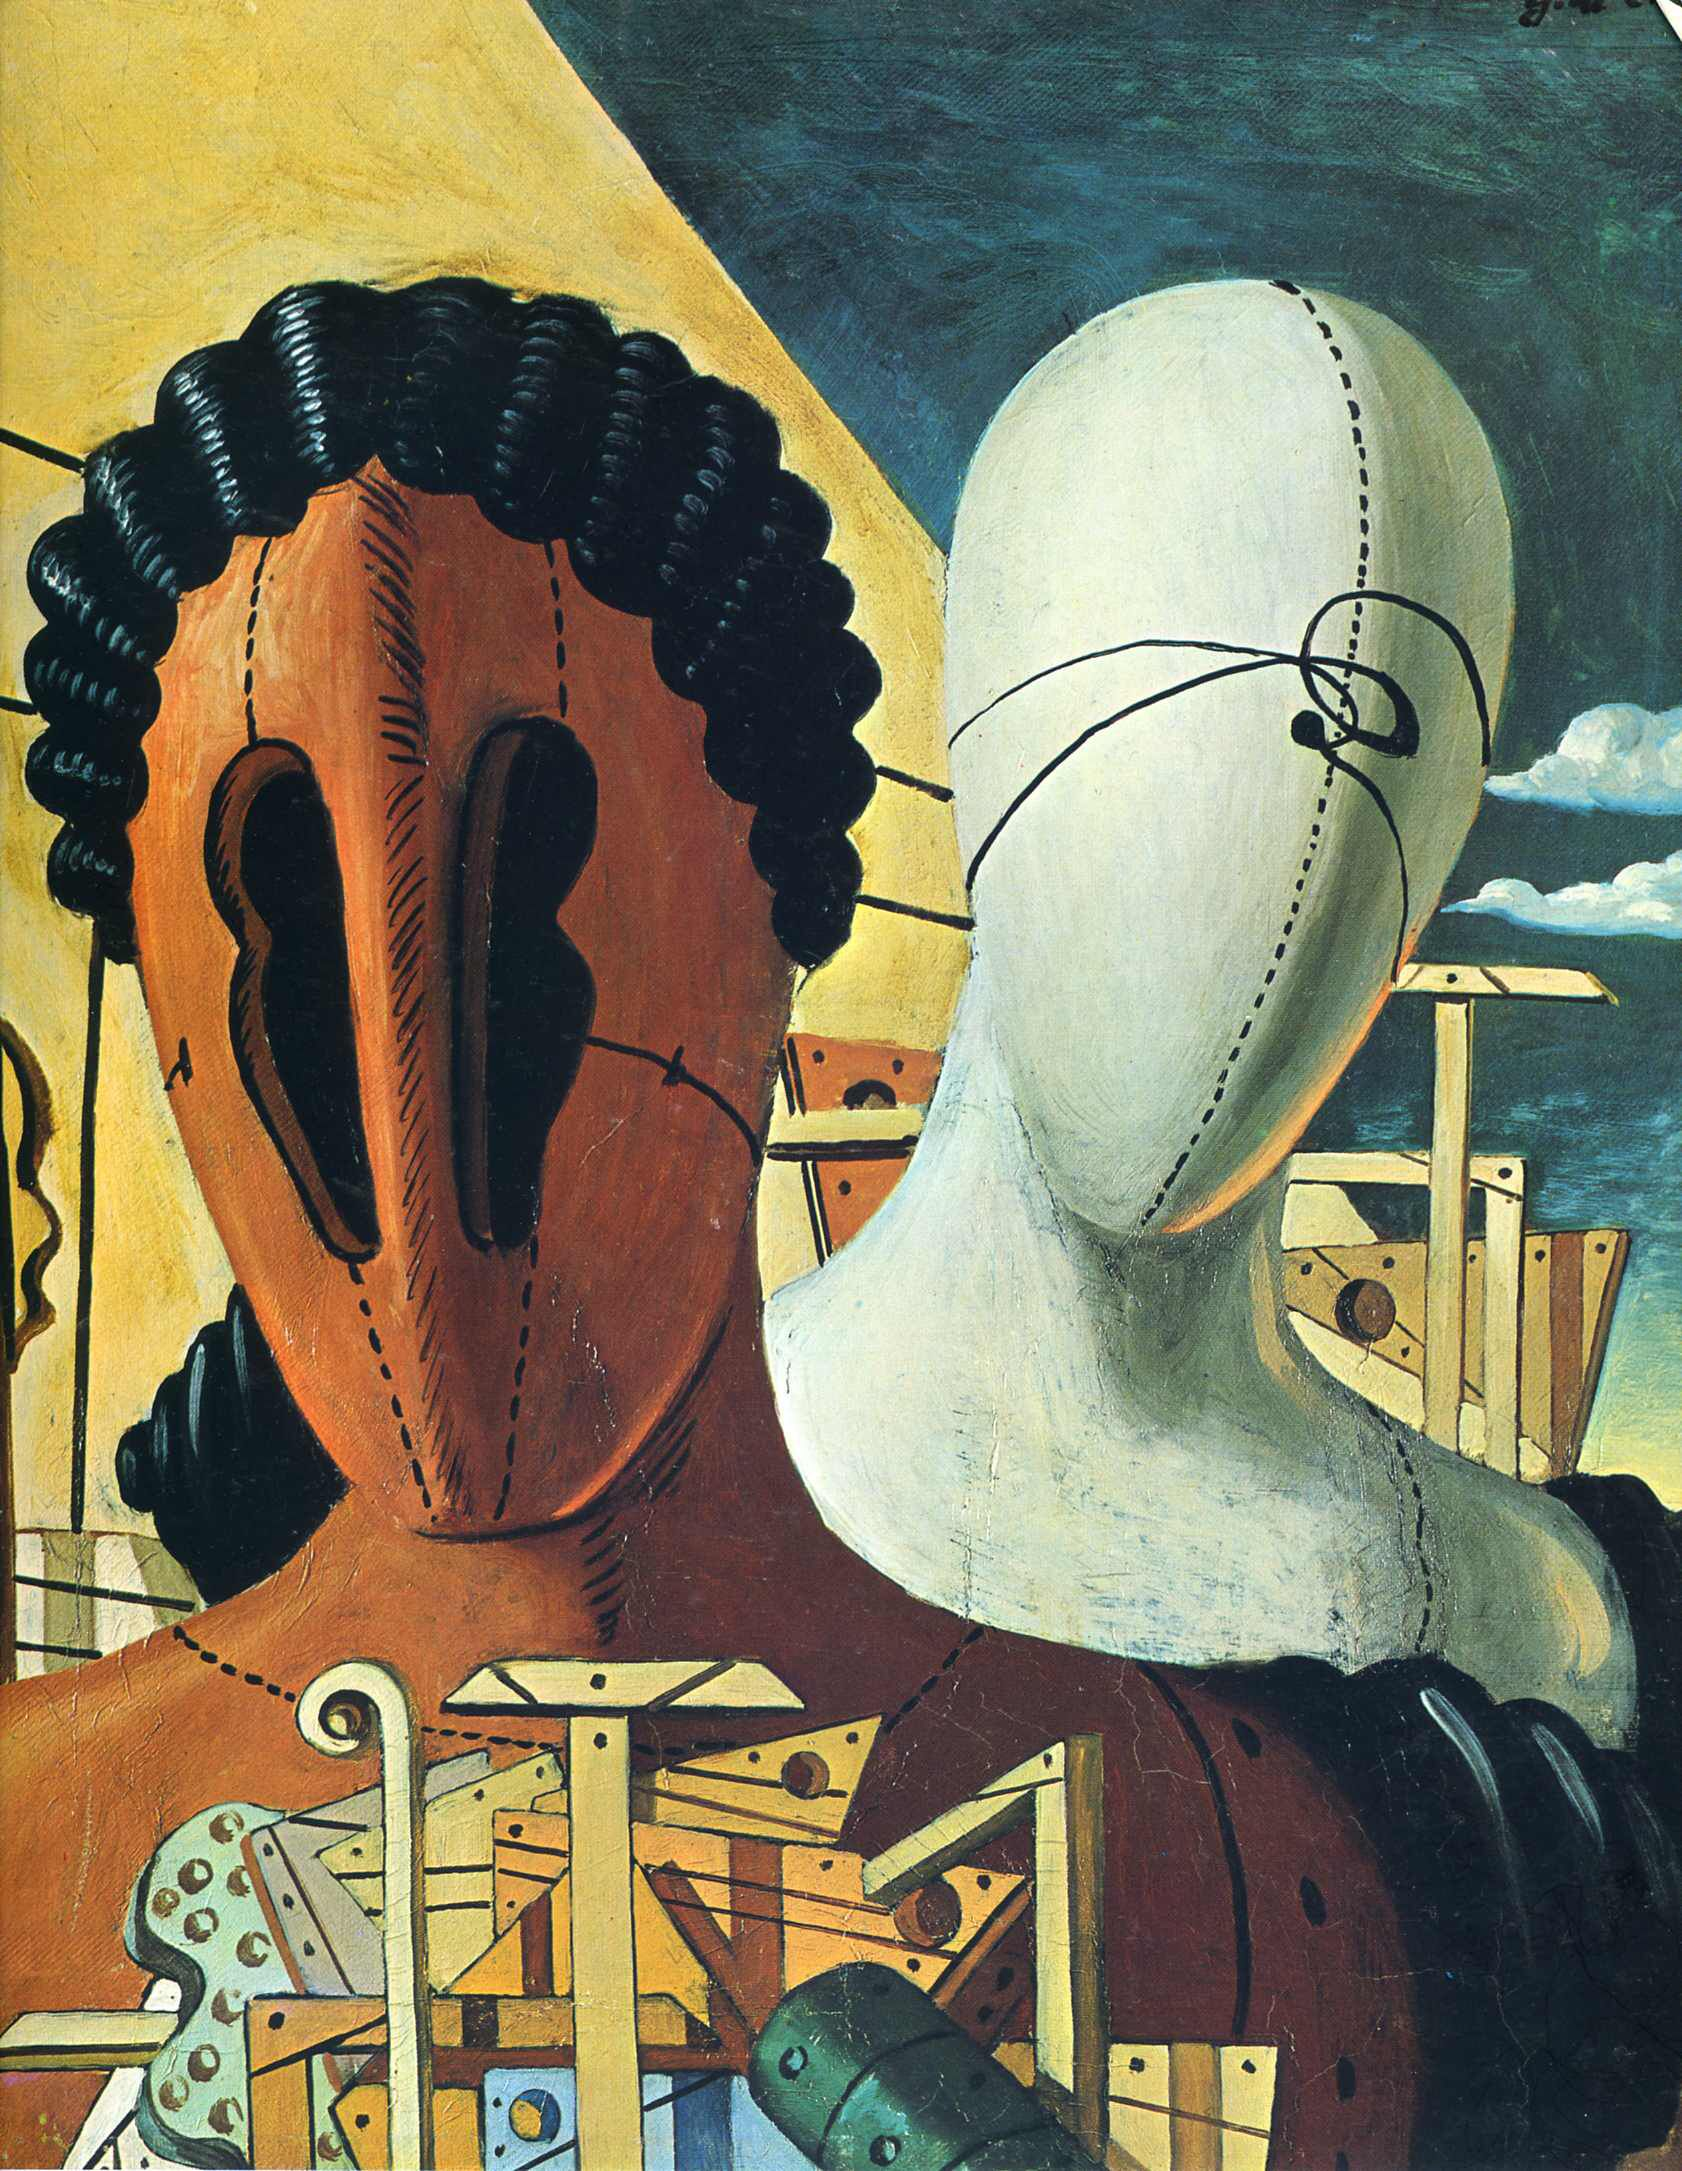 Image from http://uploads7.wikipaintings.org/images/giorgio-de-chirico/the-two-masks-1926.jpg.